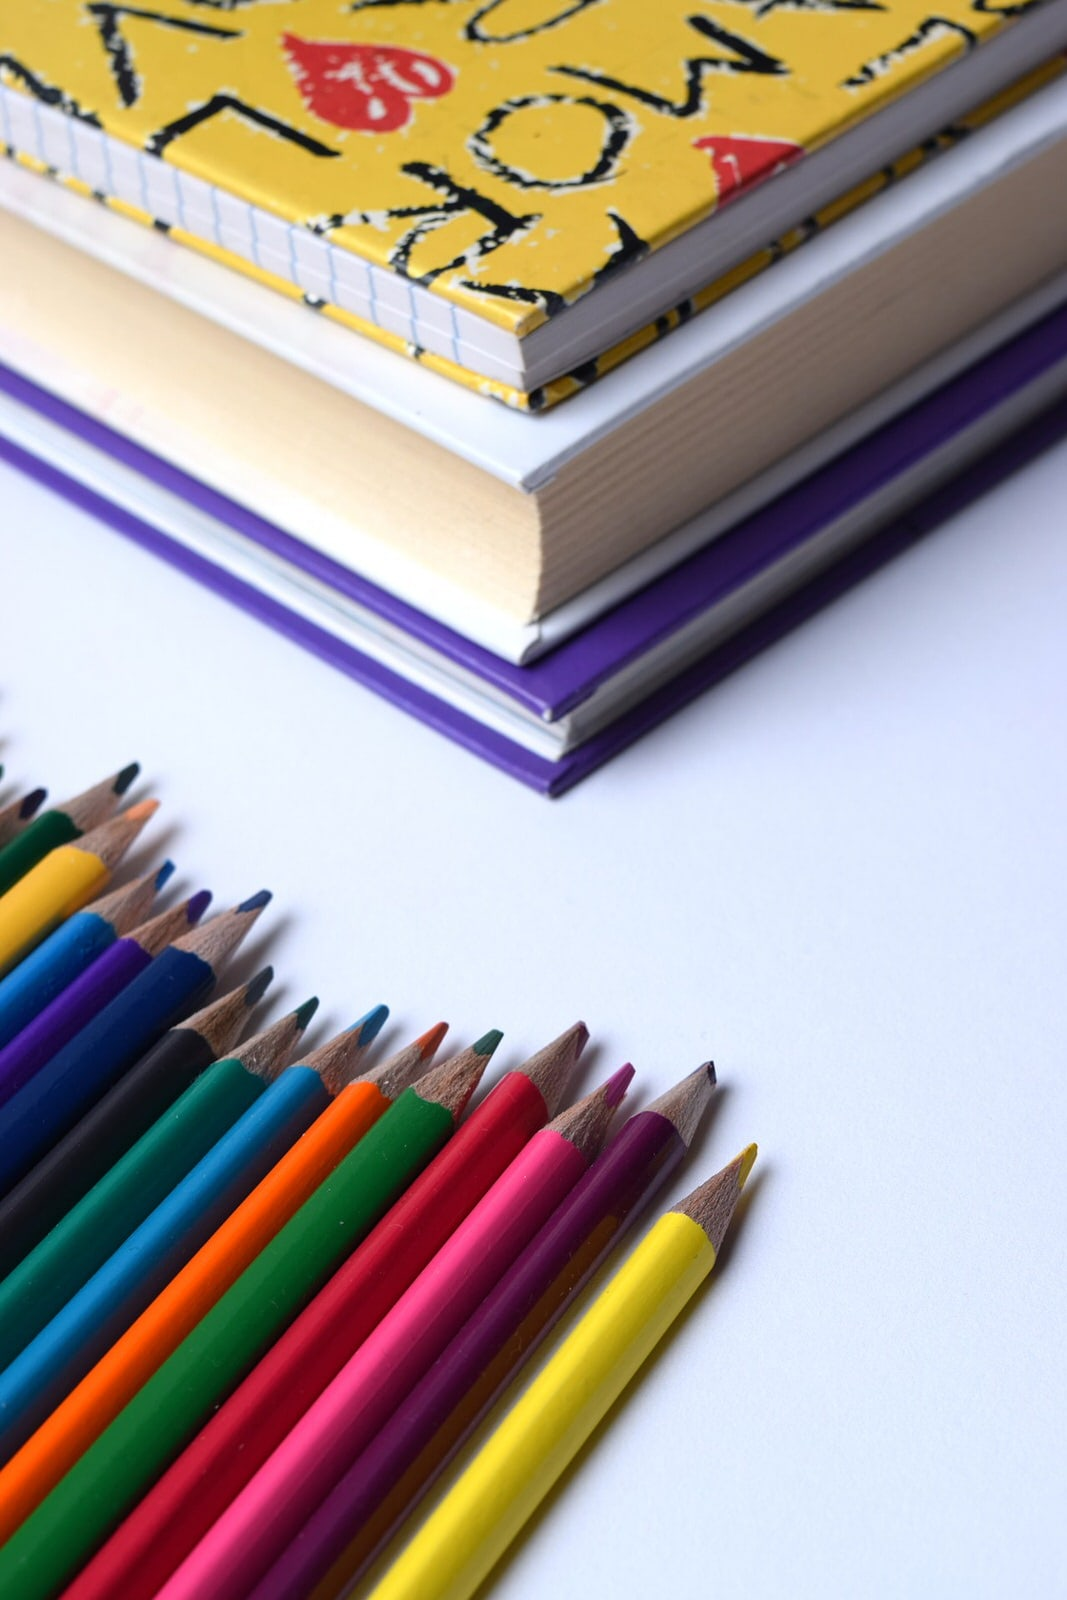 School books and pencils - education and editing.